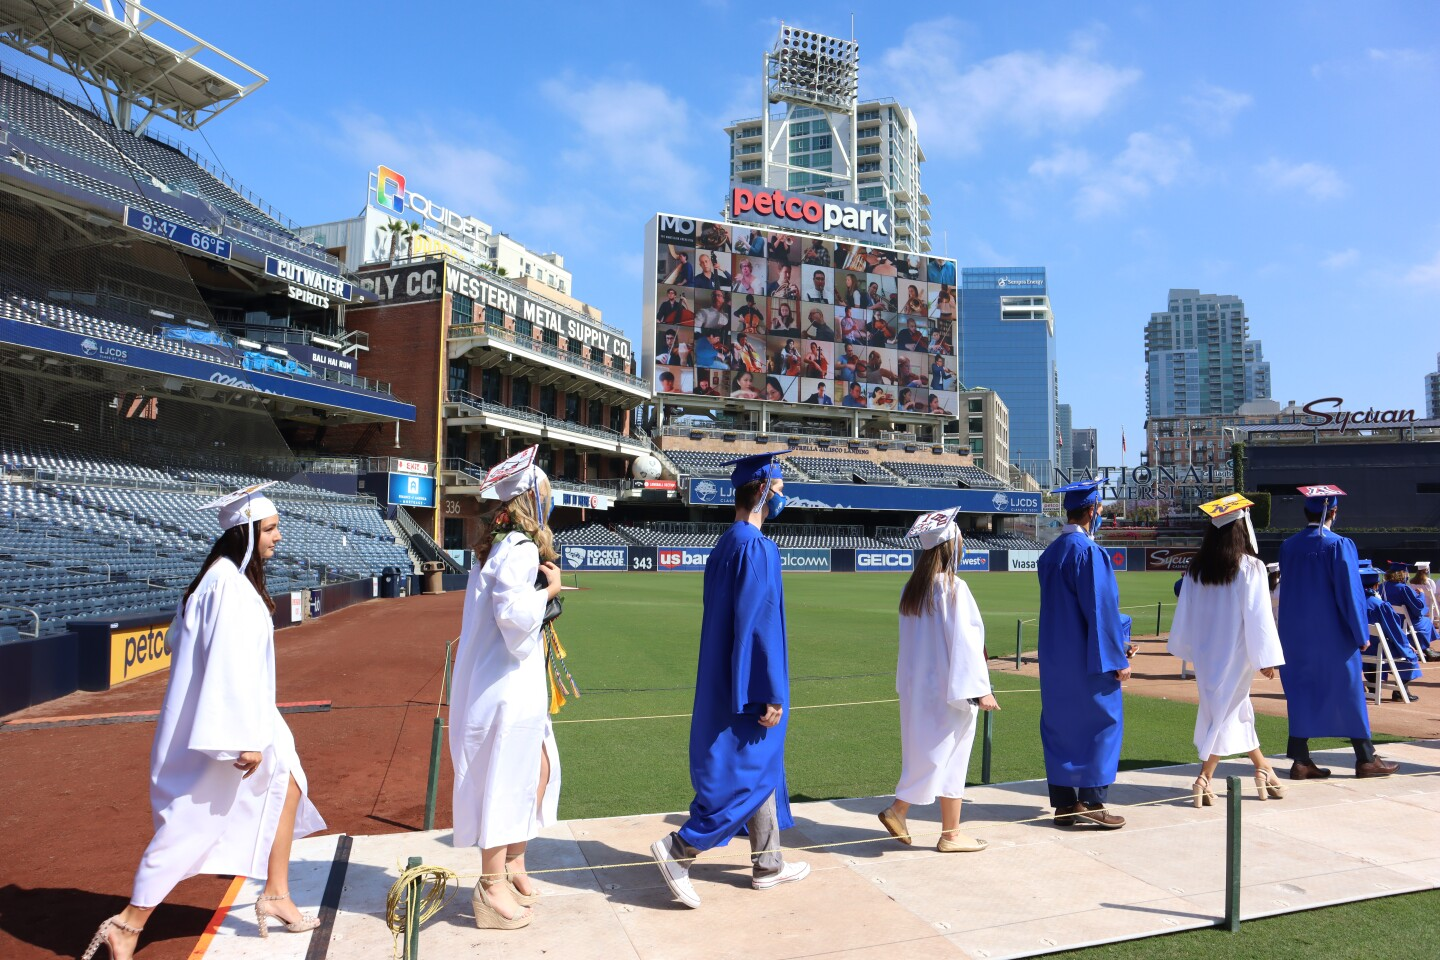 La Jolla Country Day School seniors file onto the field at Petco Park in San Diego for their graduation ceremony May 28.